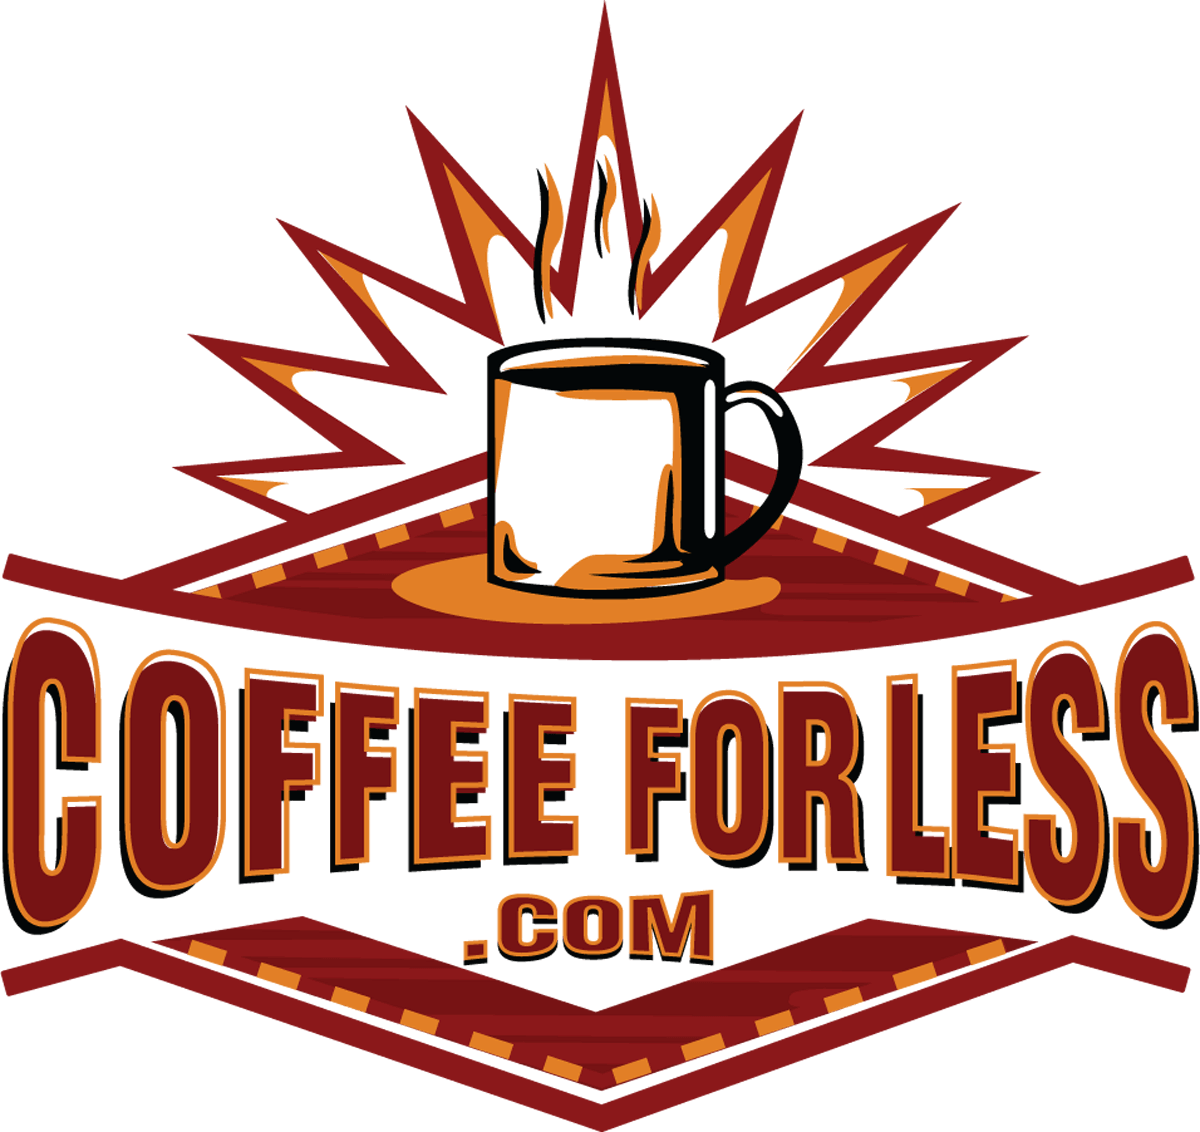 Earn Loyalty Points on Any Purchase with CoffeeForLess.com Account